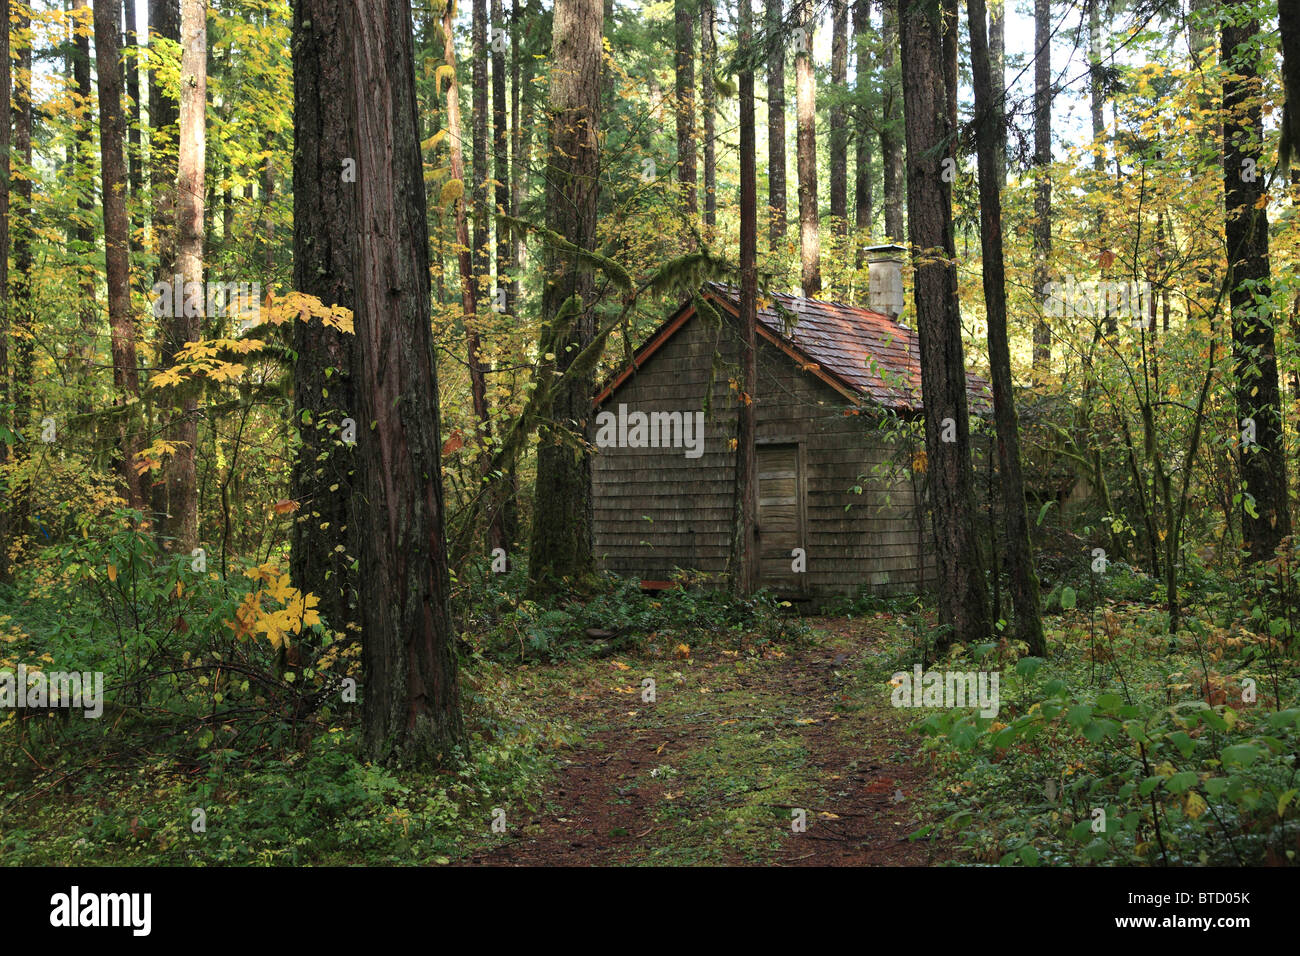 An old cabin in the woods stock photo royalty free image for Cabin in the woods oregon